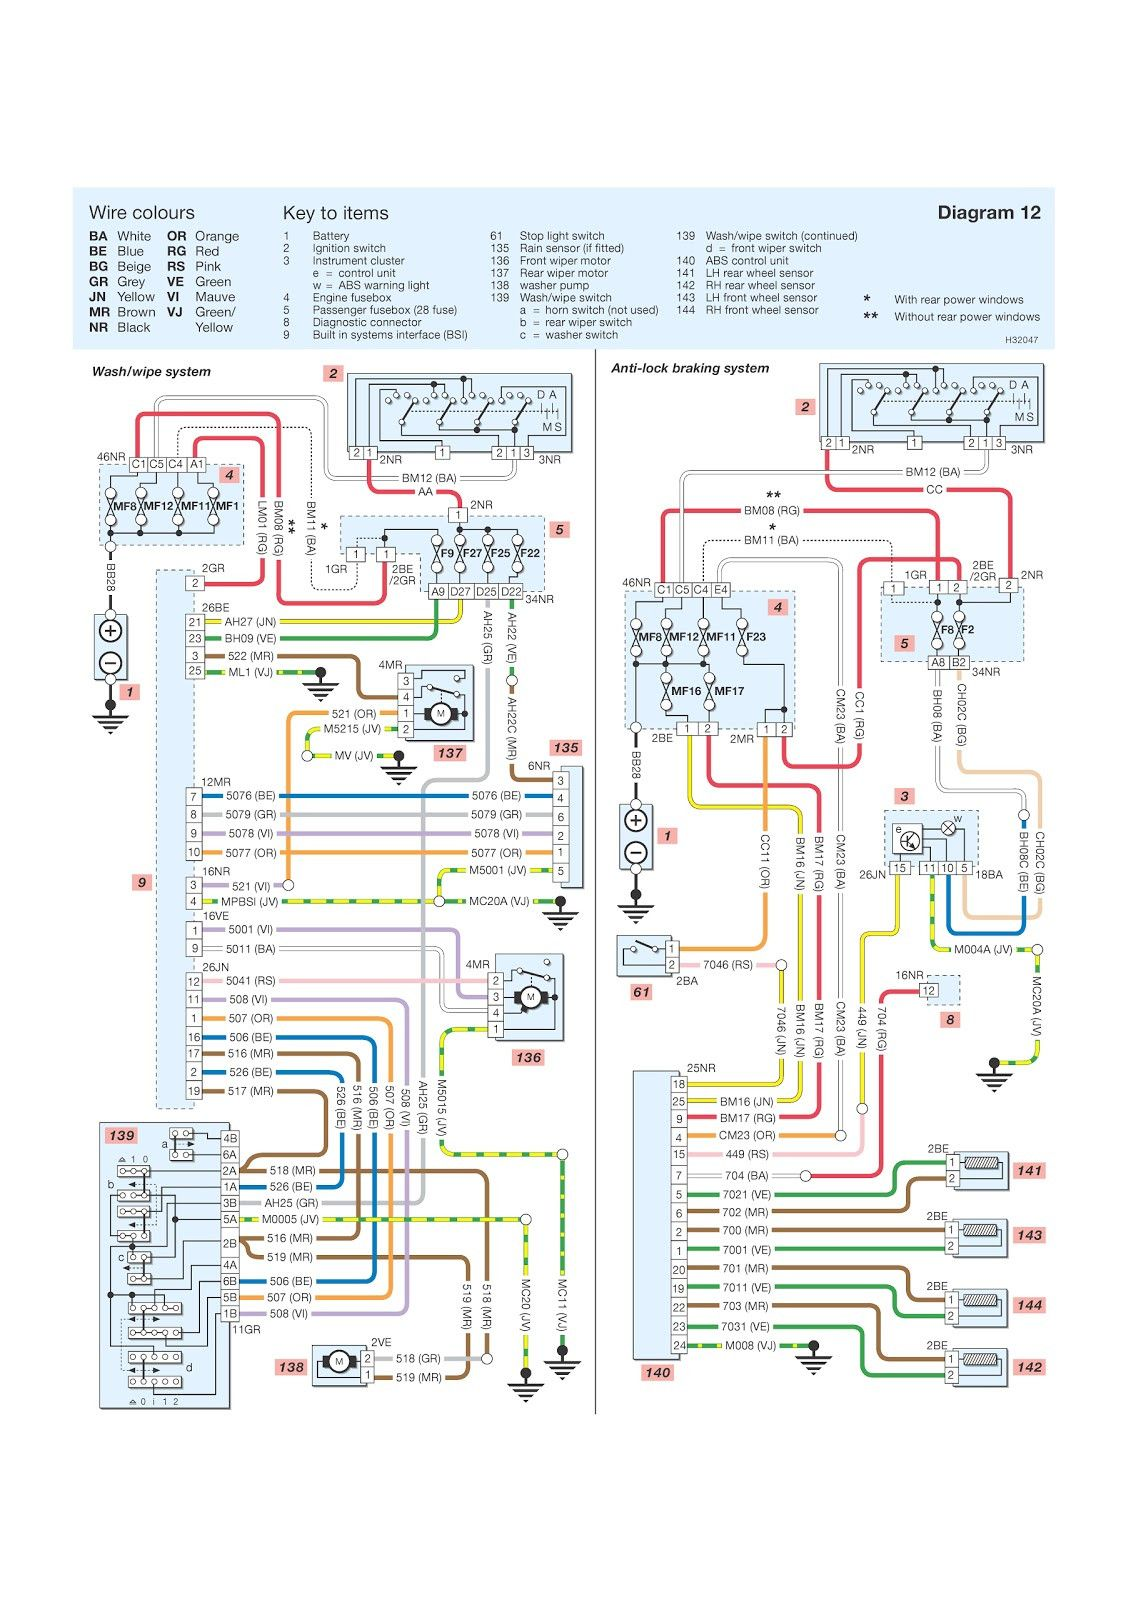 new peugeot 206 wiring diagram your diagrams source adorable rh pinterest co uk Automotive Wiring Diagrams Simple Wiring Diagrams